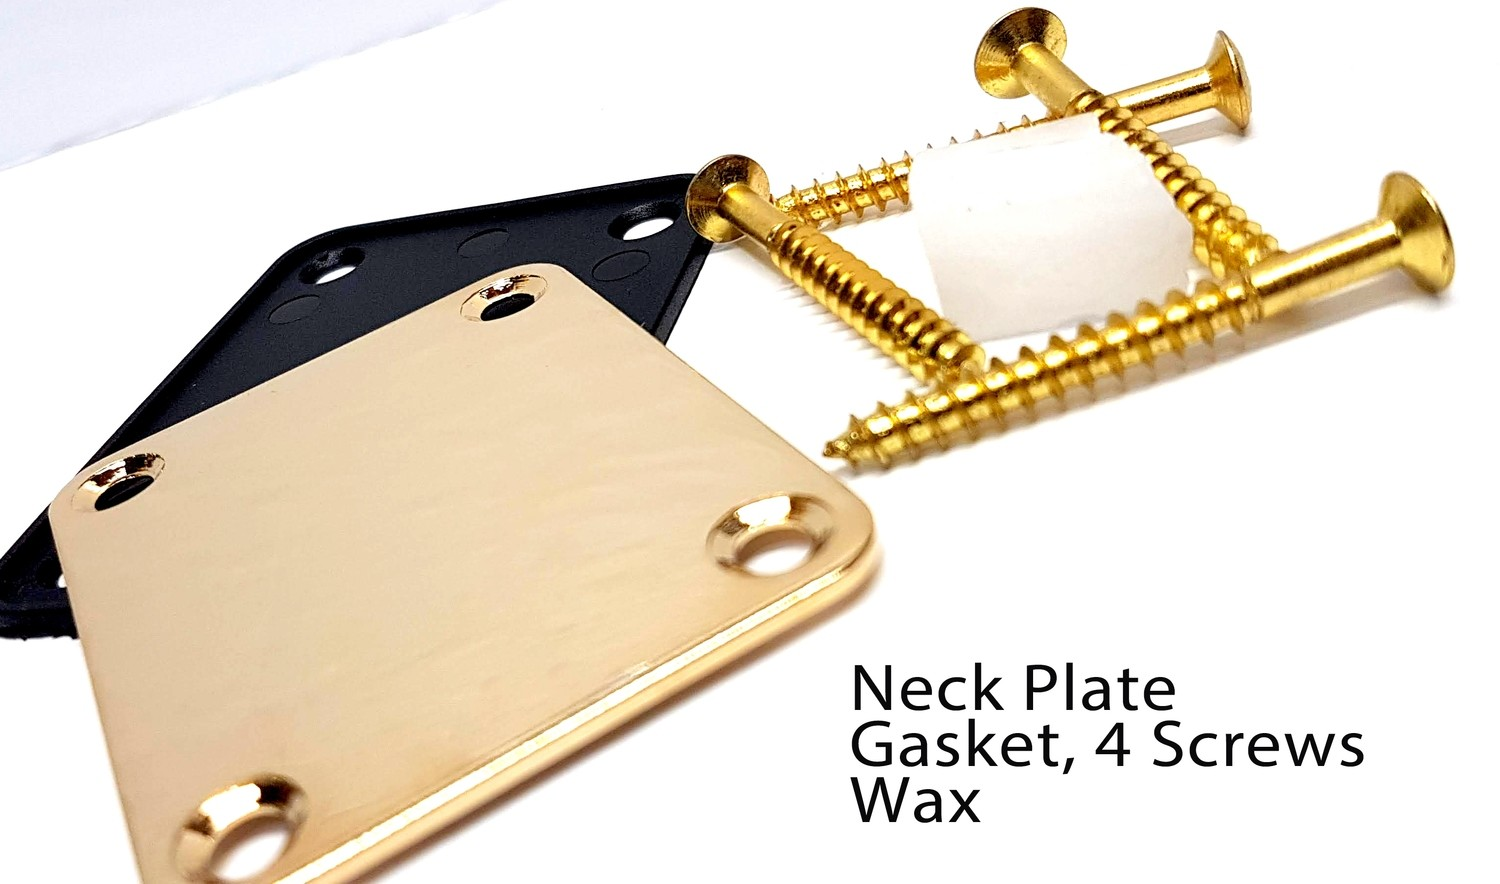 Gold Neck Plate, Neck Screws, Gasket and Wax